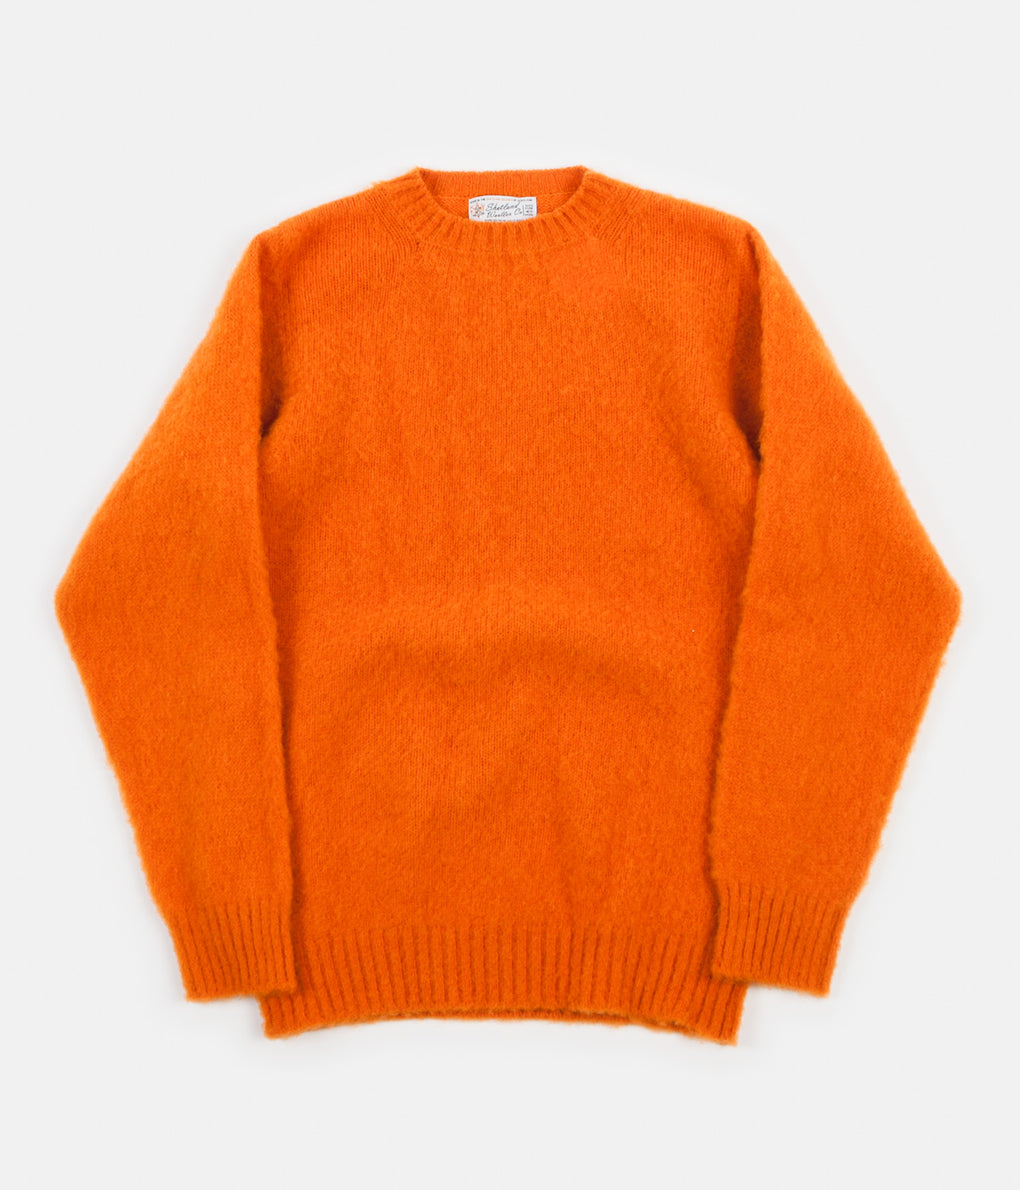 Shetland Woollen Co. Heavy Brushed Shaggy Crewneck - Orange